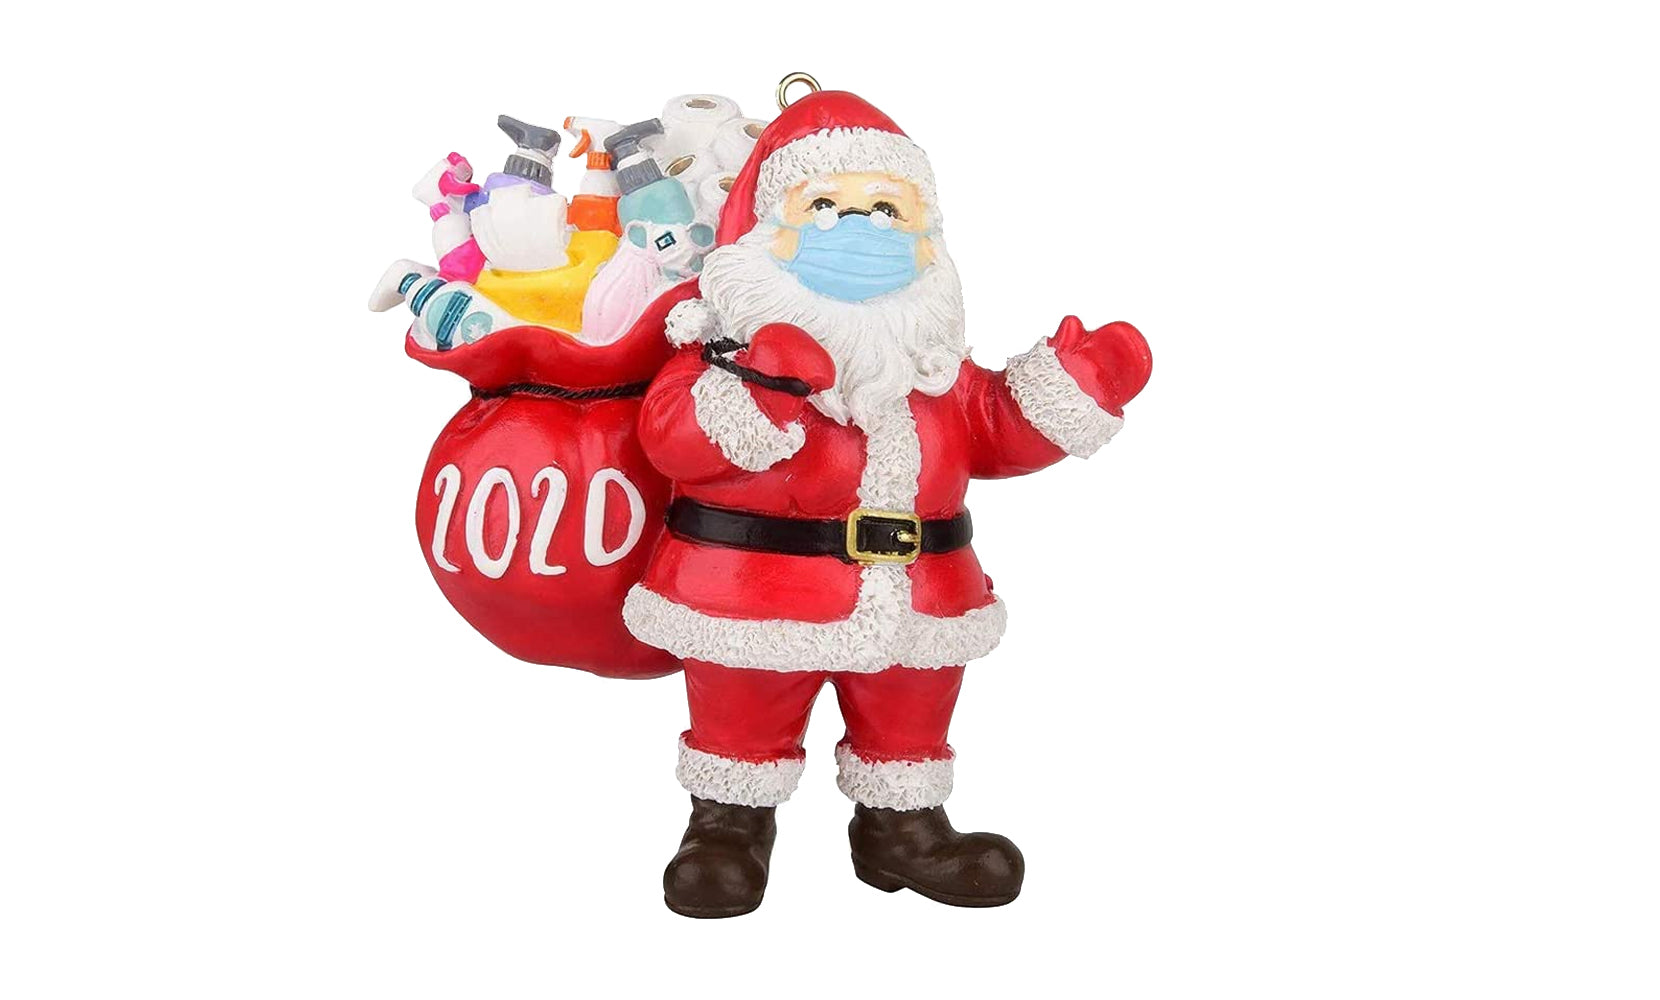 shopify-2020 Quarantine Survivor Santa Claus  Christmas Ornaments Wearing Mask and Carrying All Essentials-1